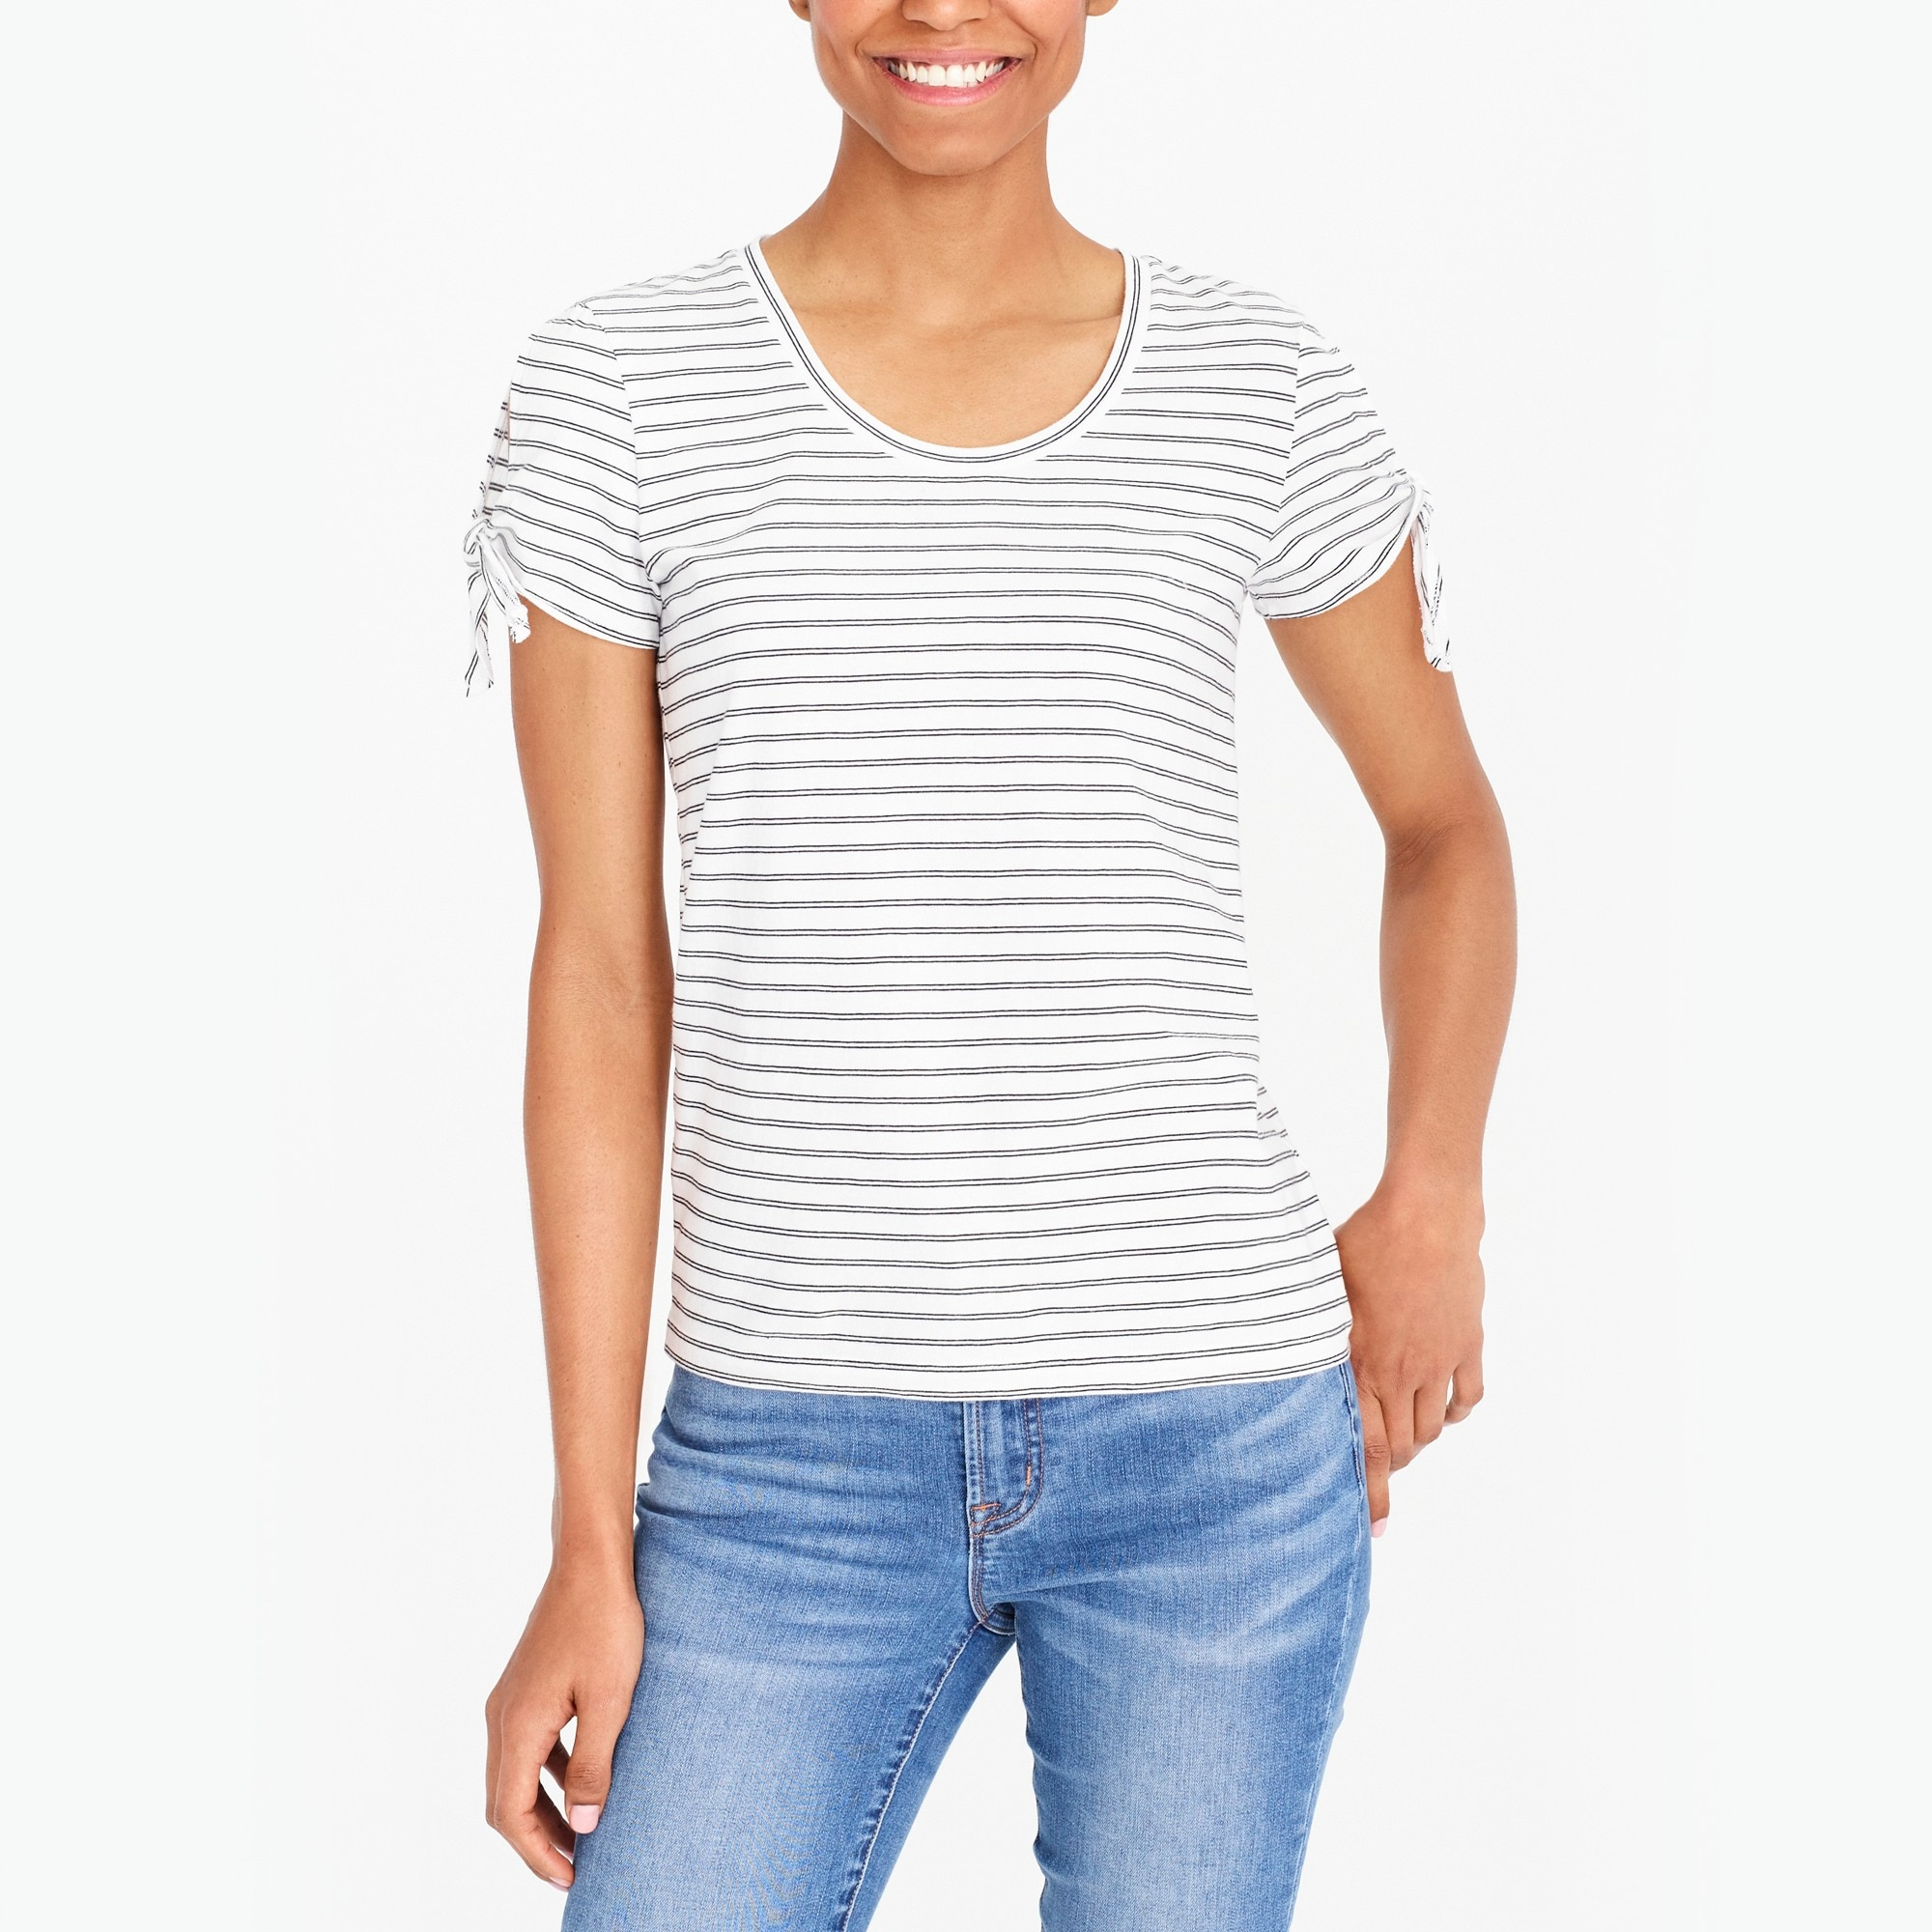 Striped tie-shoulder T-shirt factorywomen the score: tie-shoulder t-shirts and sidewalk skirts c